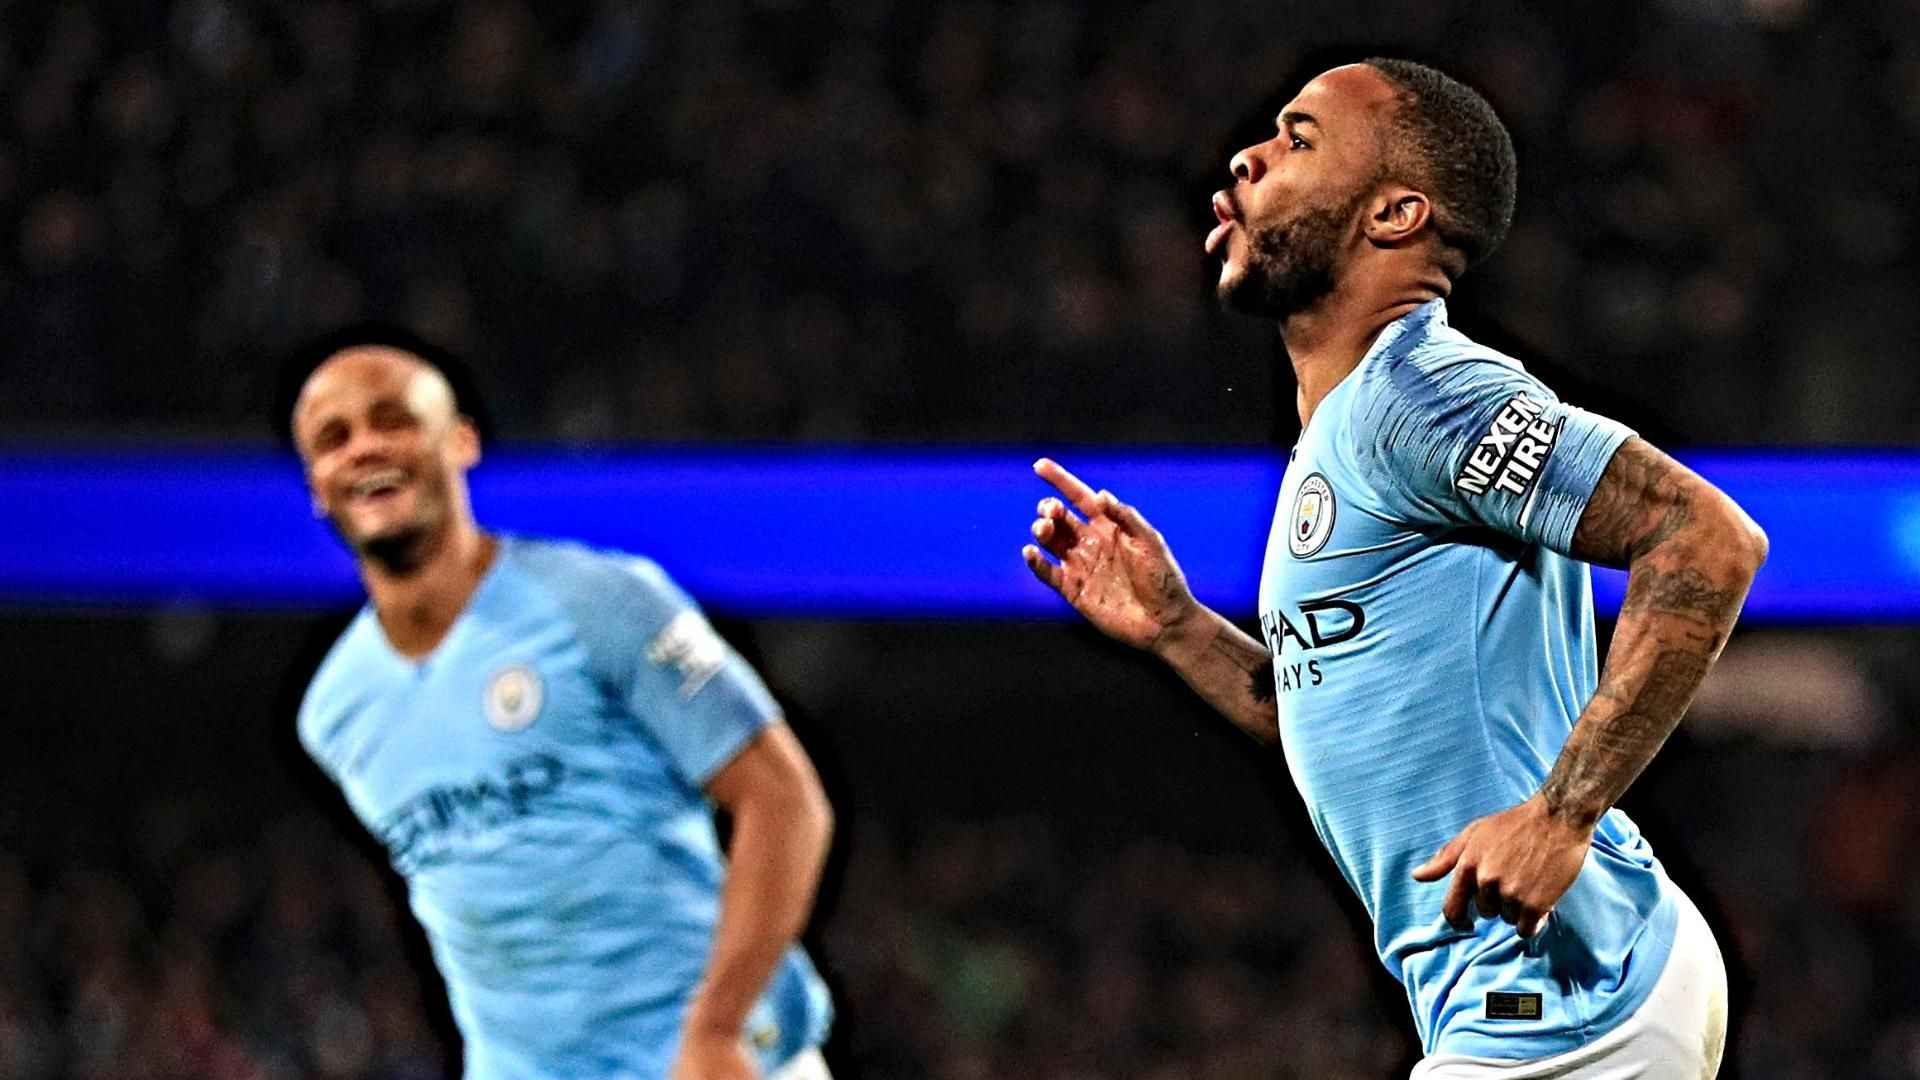 baseball-int 190309 INET SOC Highlight Sterling hat trick s869 - Raheem Sterling 9/10 with fine hat-trick as Man City swept past Watford to remain top